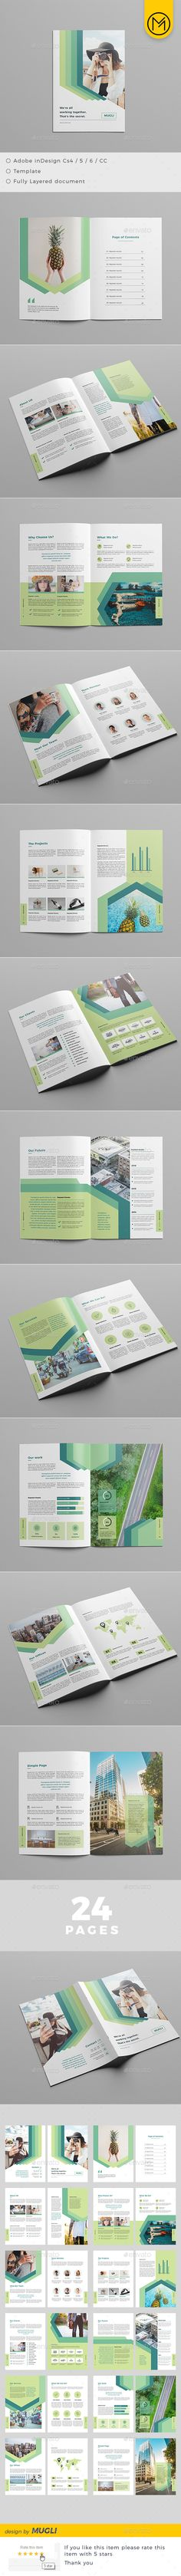 The Brochure — InDesign INDD #identity #template • Download ➝ https://graphicriver.net/item/the-brochure/19208253?ref=pxcr